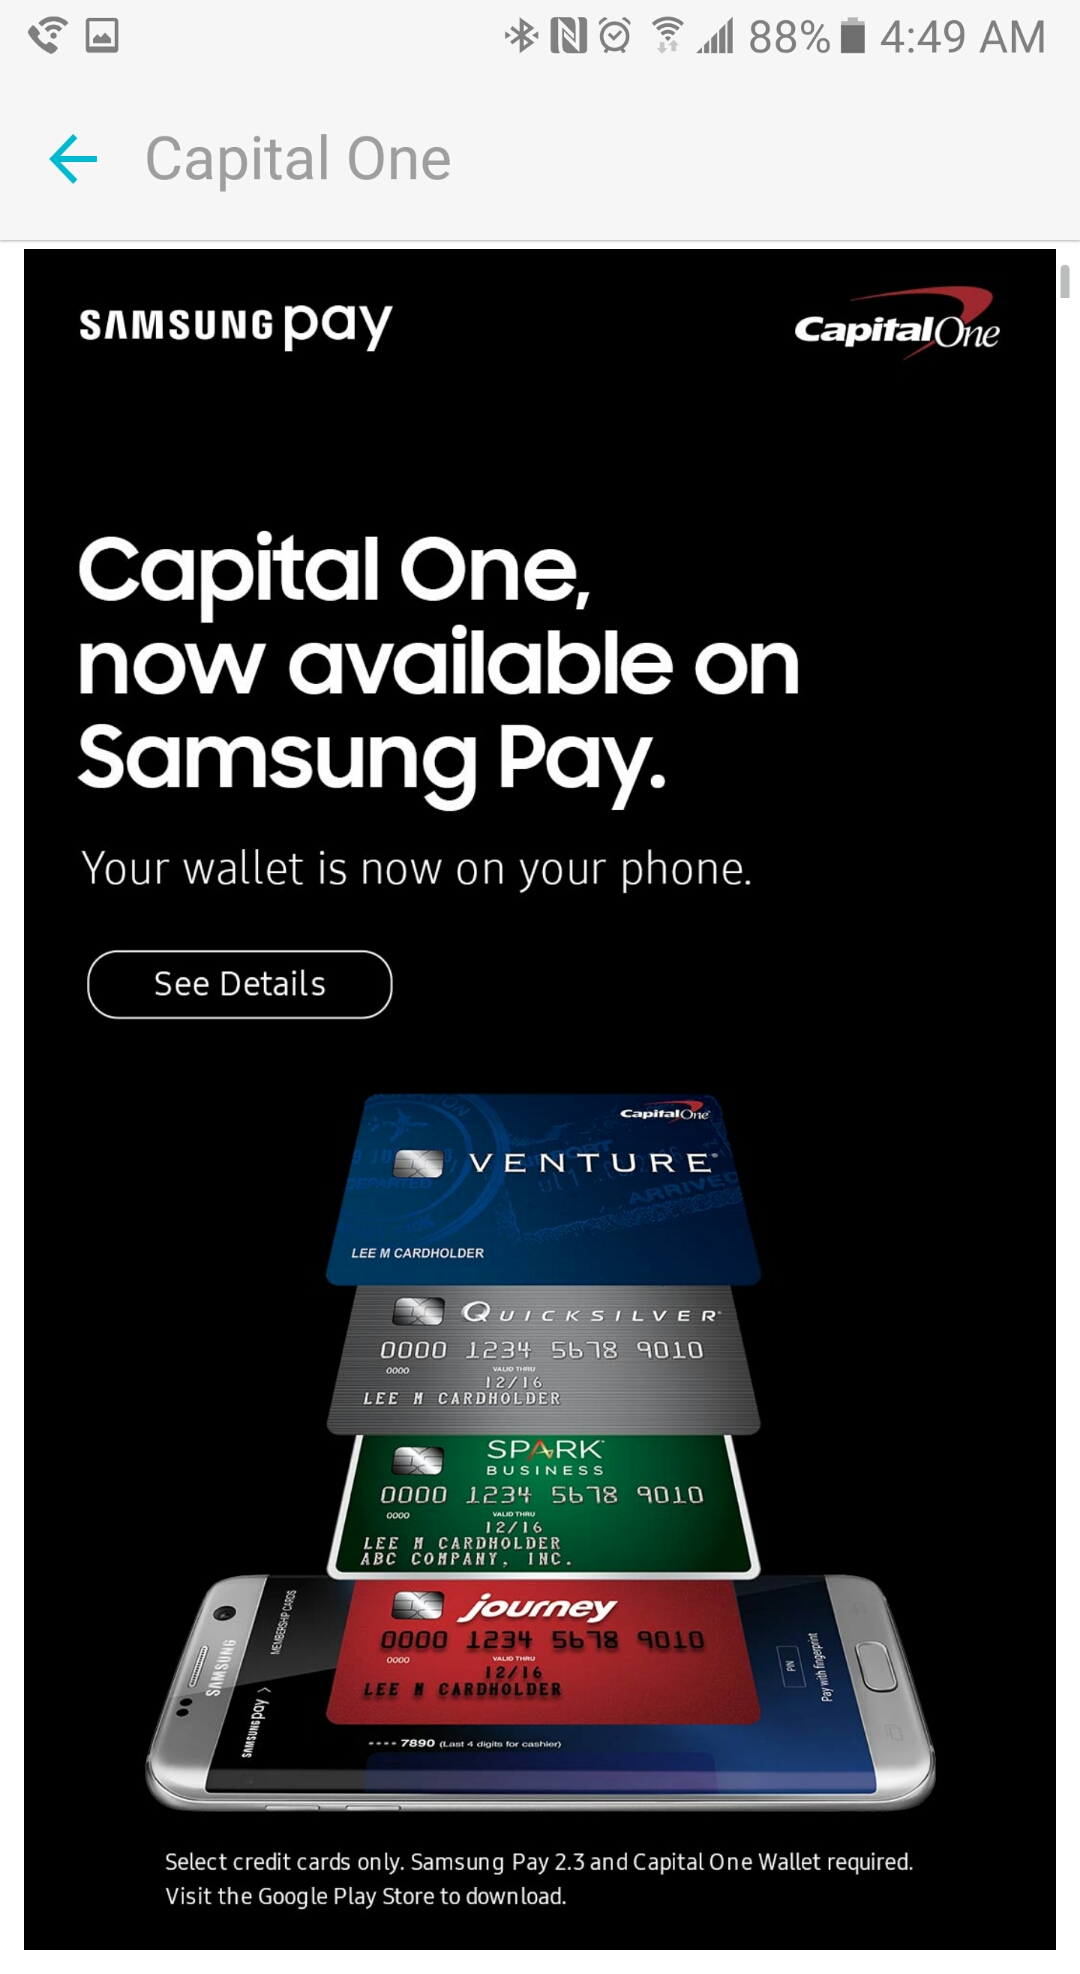 Capital One's Platinum credit card now works with Samsung Pay